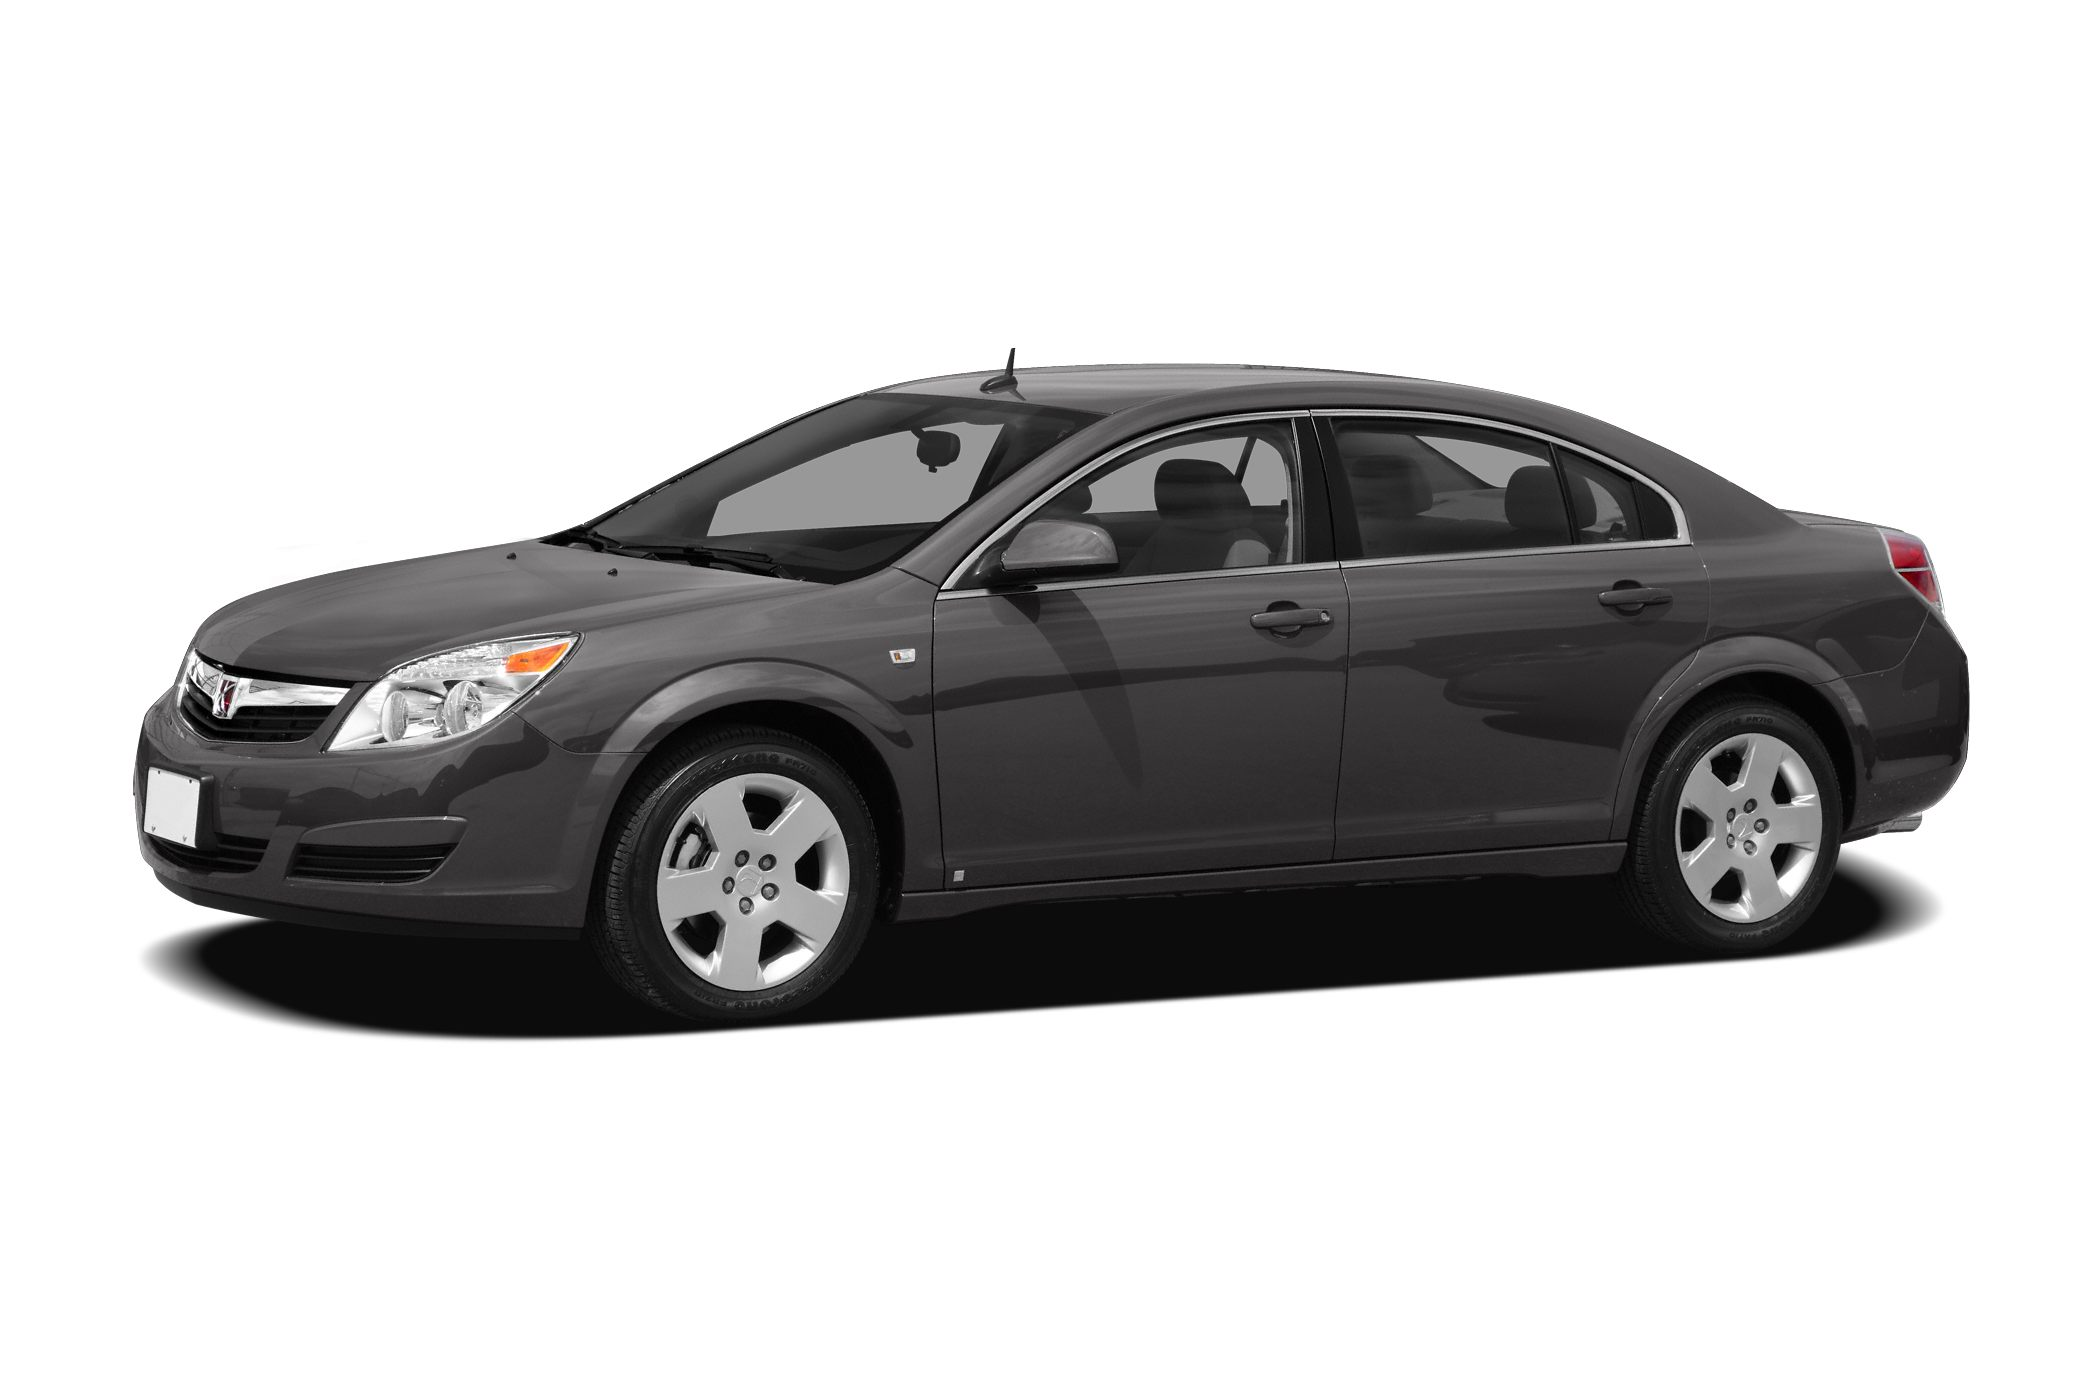 2008 Saturn Aura XR Sedan for sale in Smyrna for $9,990 with 109,500 miles